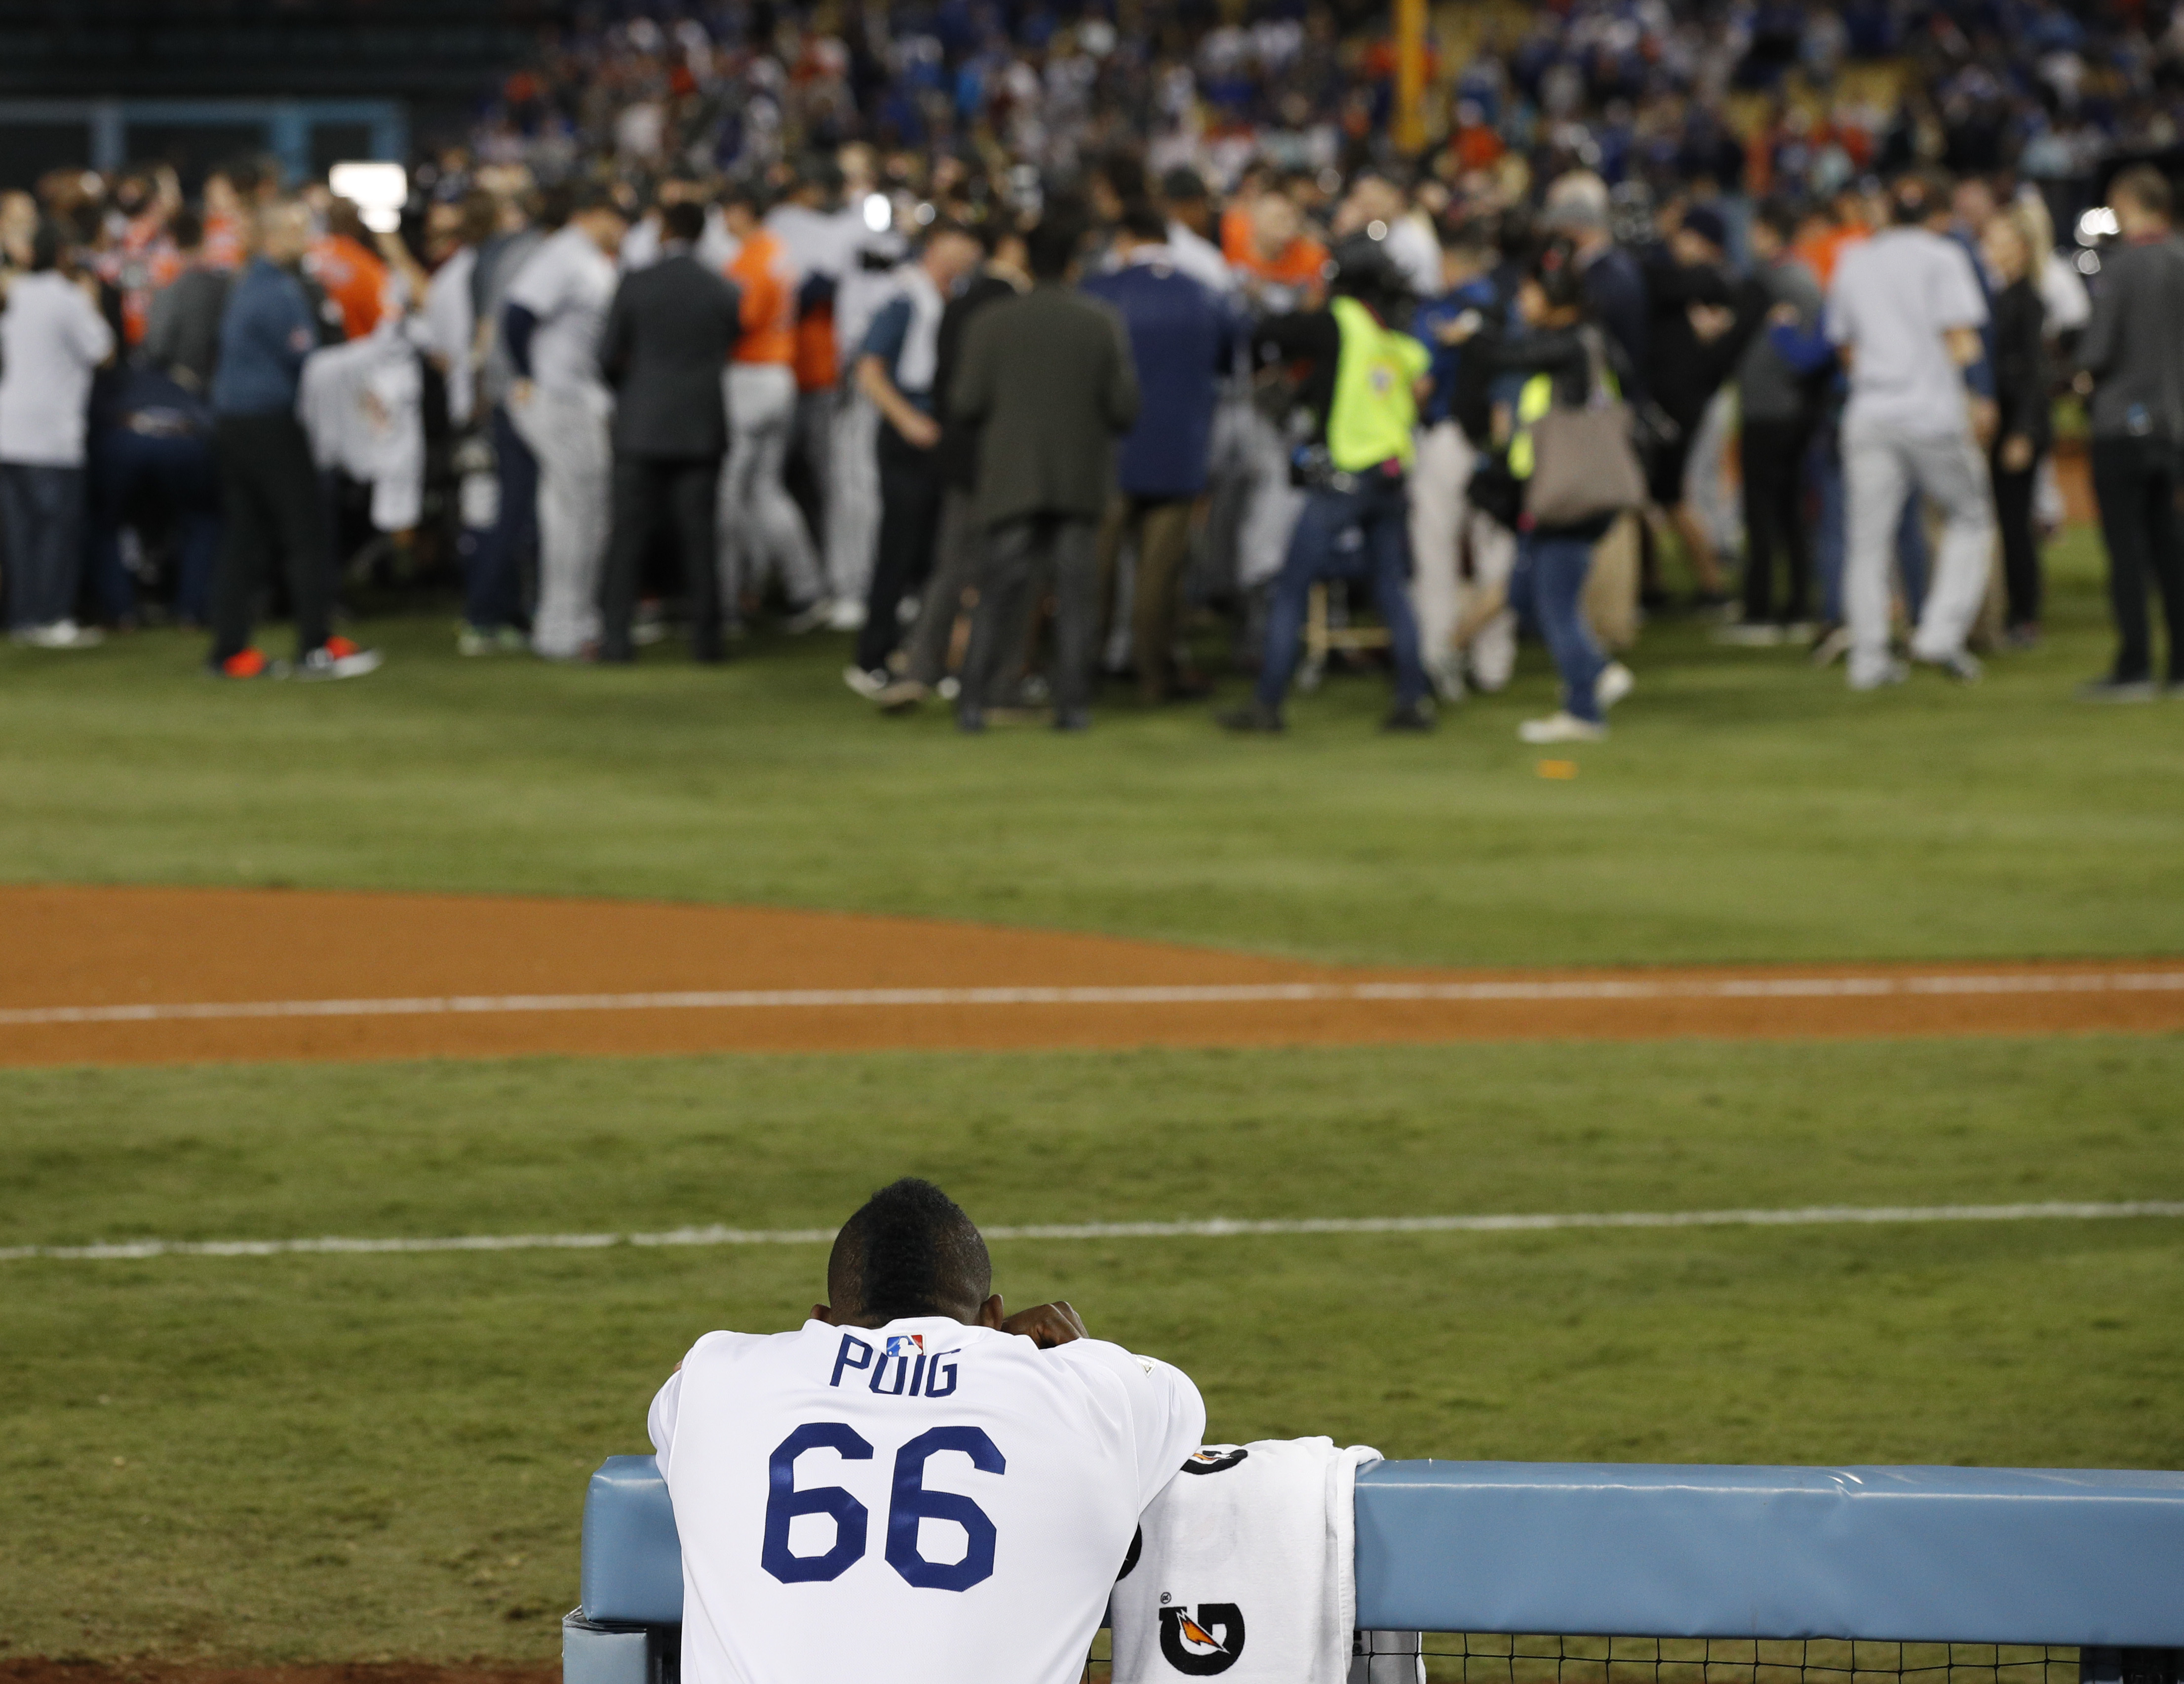 Los Angeles Dodgers right fielder Yasiel Puig watches as the Houston Astros celebrate their win in Game 7 of the World Series Wednesday, Nov. 1, 2017, in Los Angeles. The Astros won 5-1 to win the series 4-3. (AP Photo/Jae C. Hong)